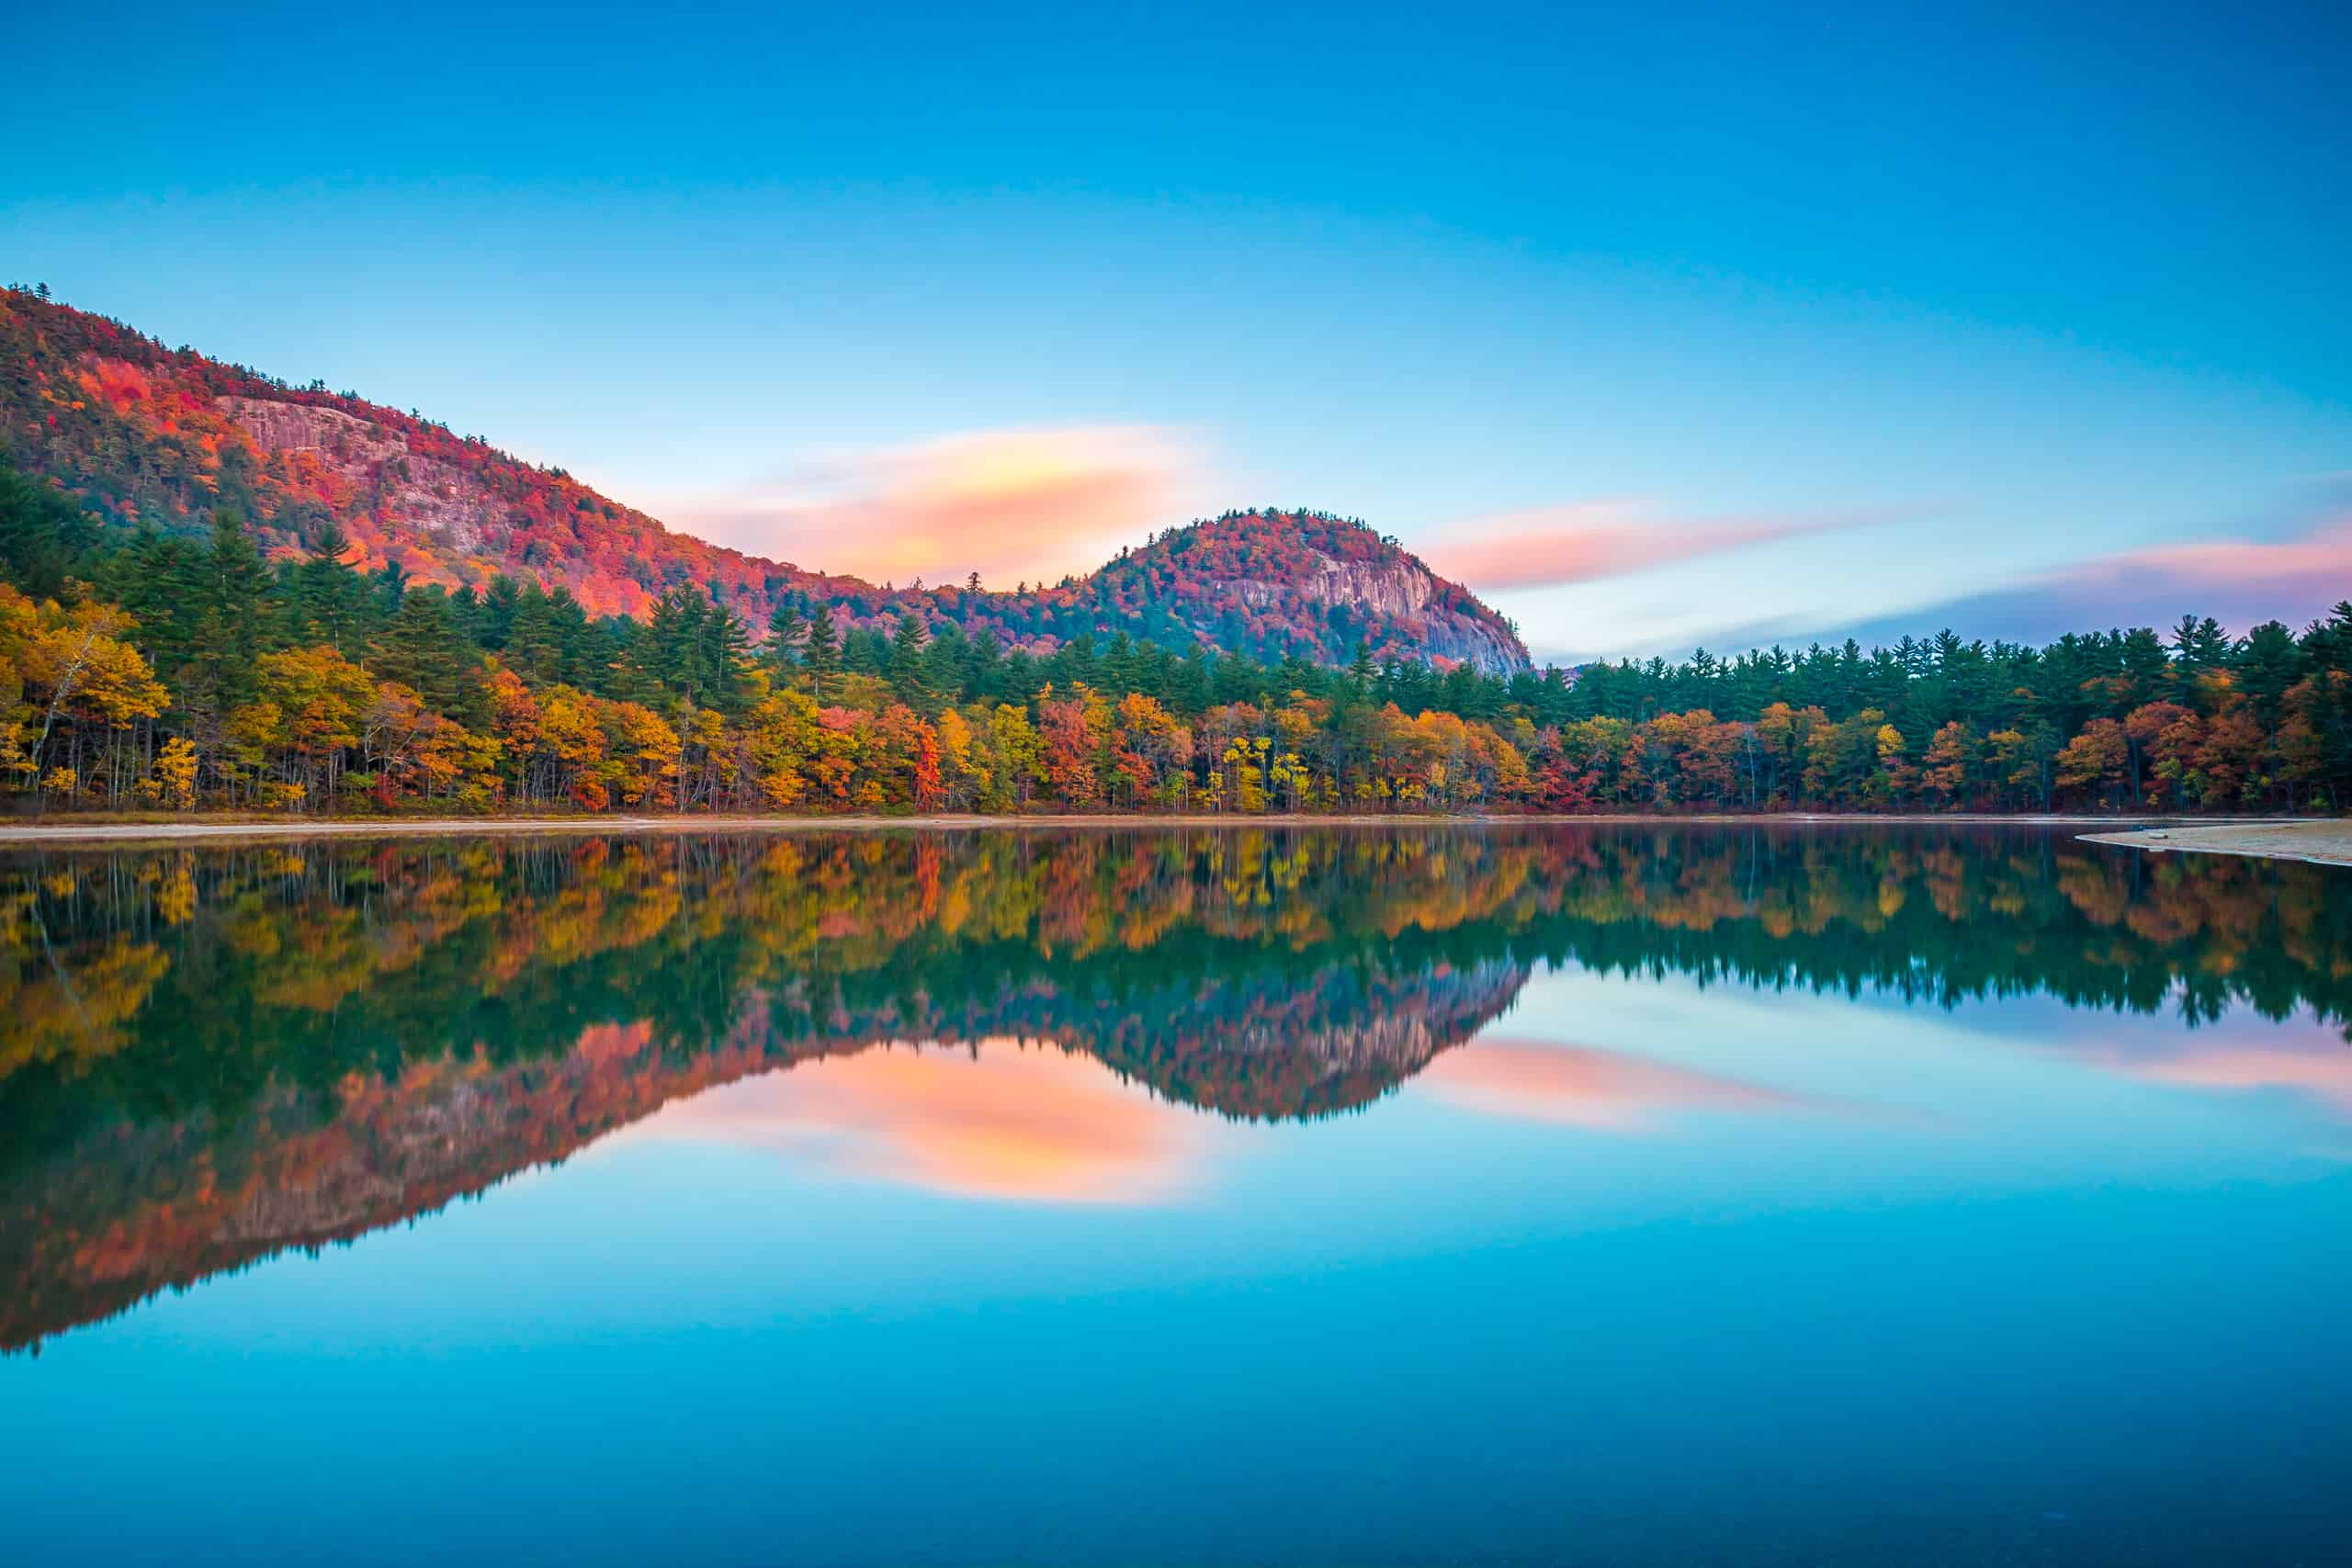 beautiful places to visit in NH - image of Echo Lake State Park in New Hampshire in the fall, lake is seen at sunset